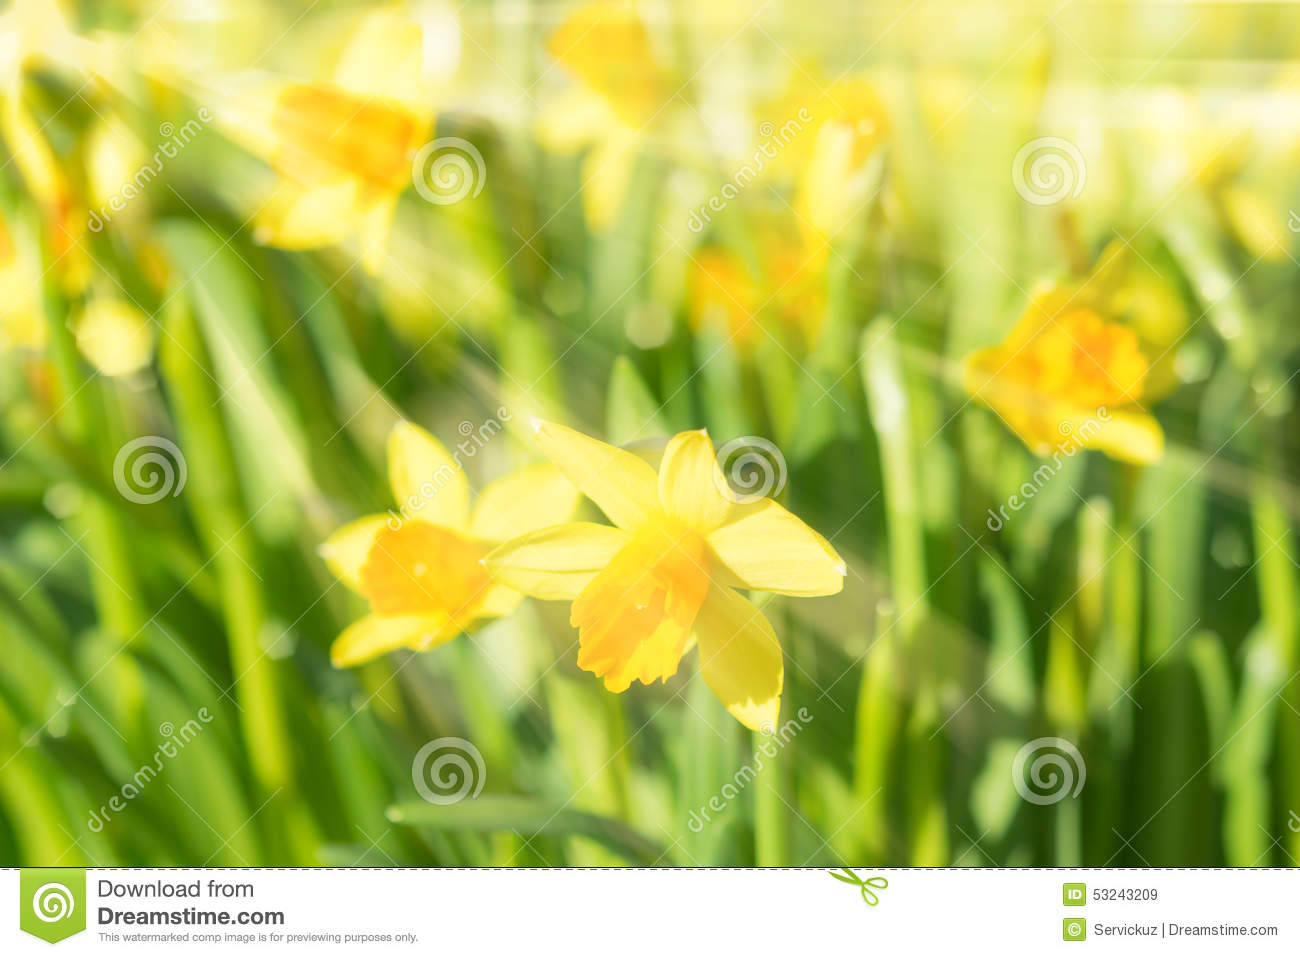 Spring blossom narcissus daffodils yellow sunlit flowers